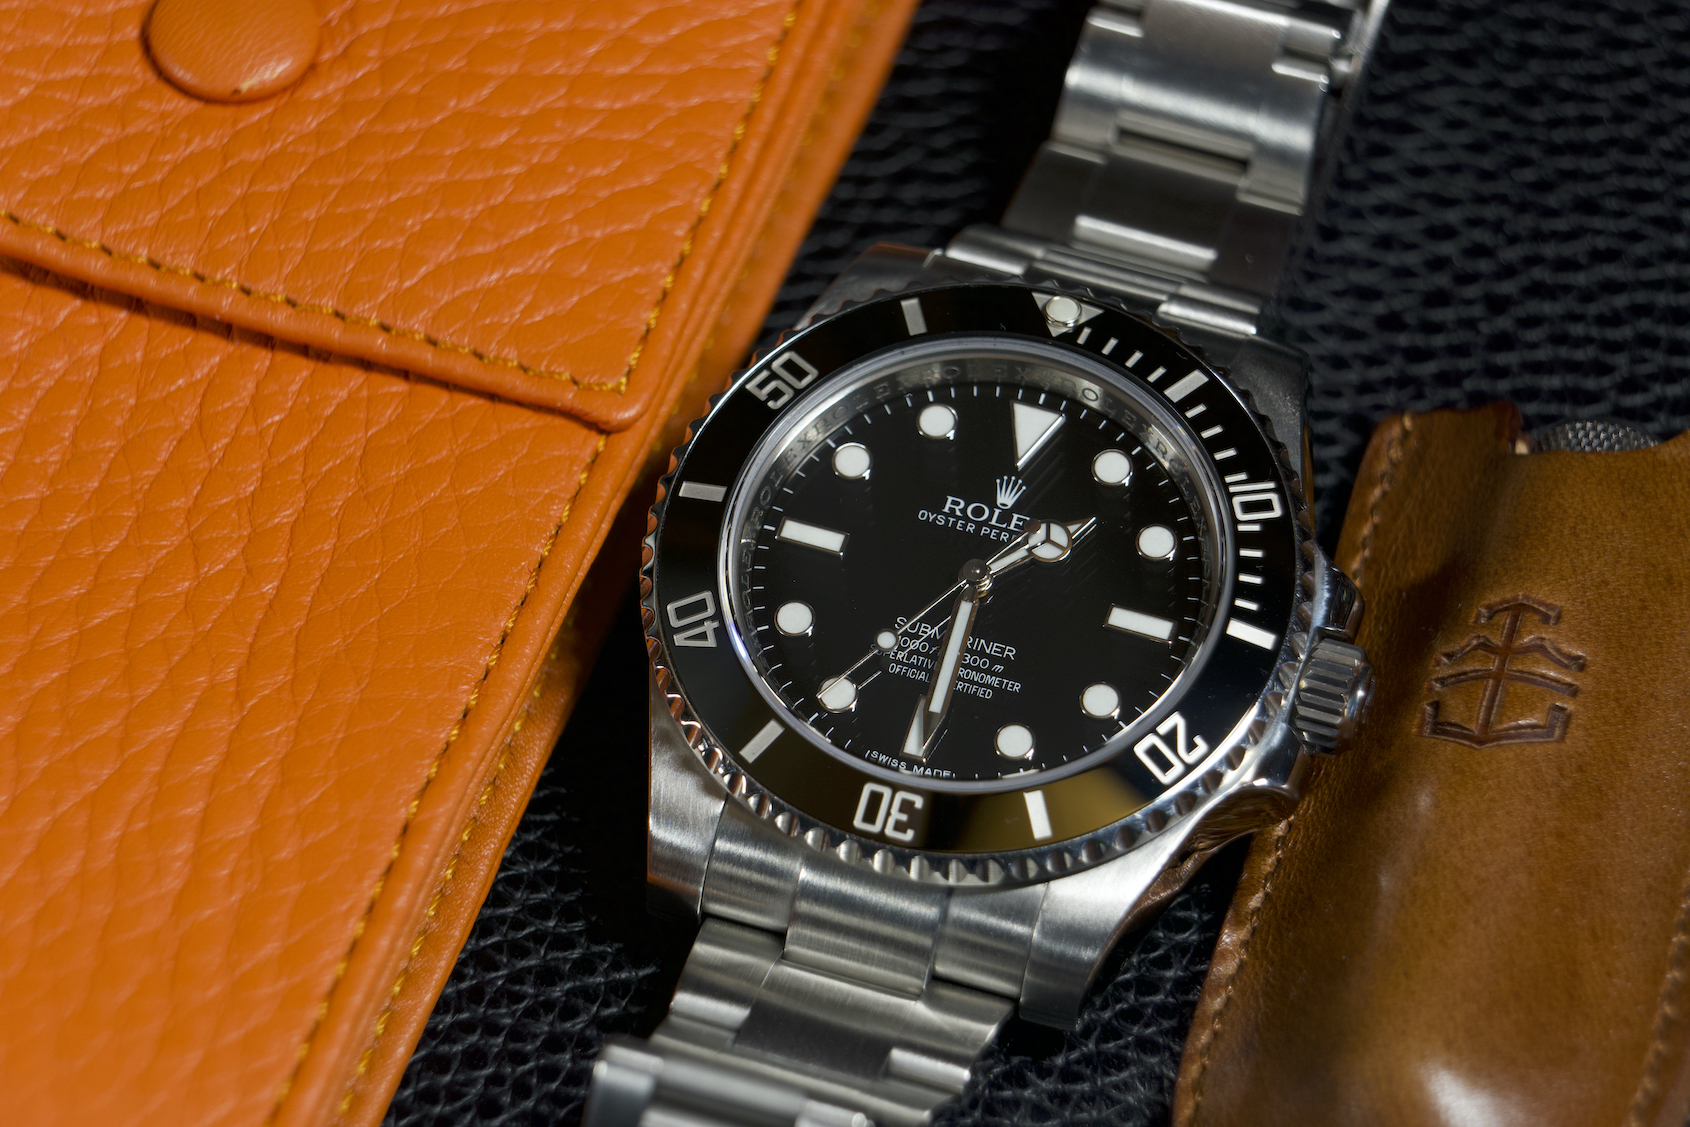 EDITOR'S PICK: Why I traded a Patek Philippe and a panda dial Omega Speedmaster for a Rolex Submariner